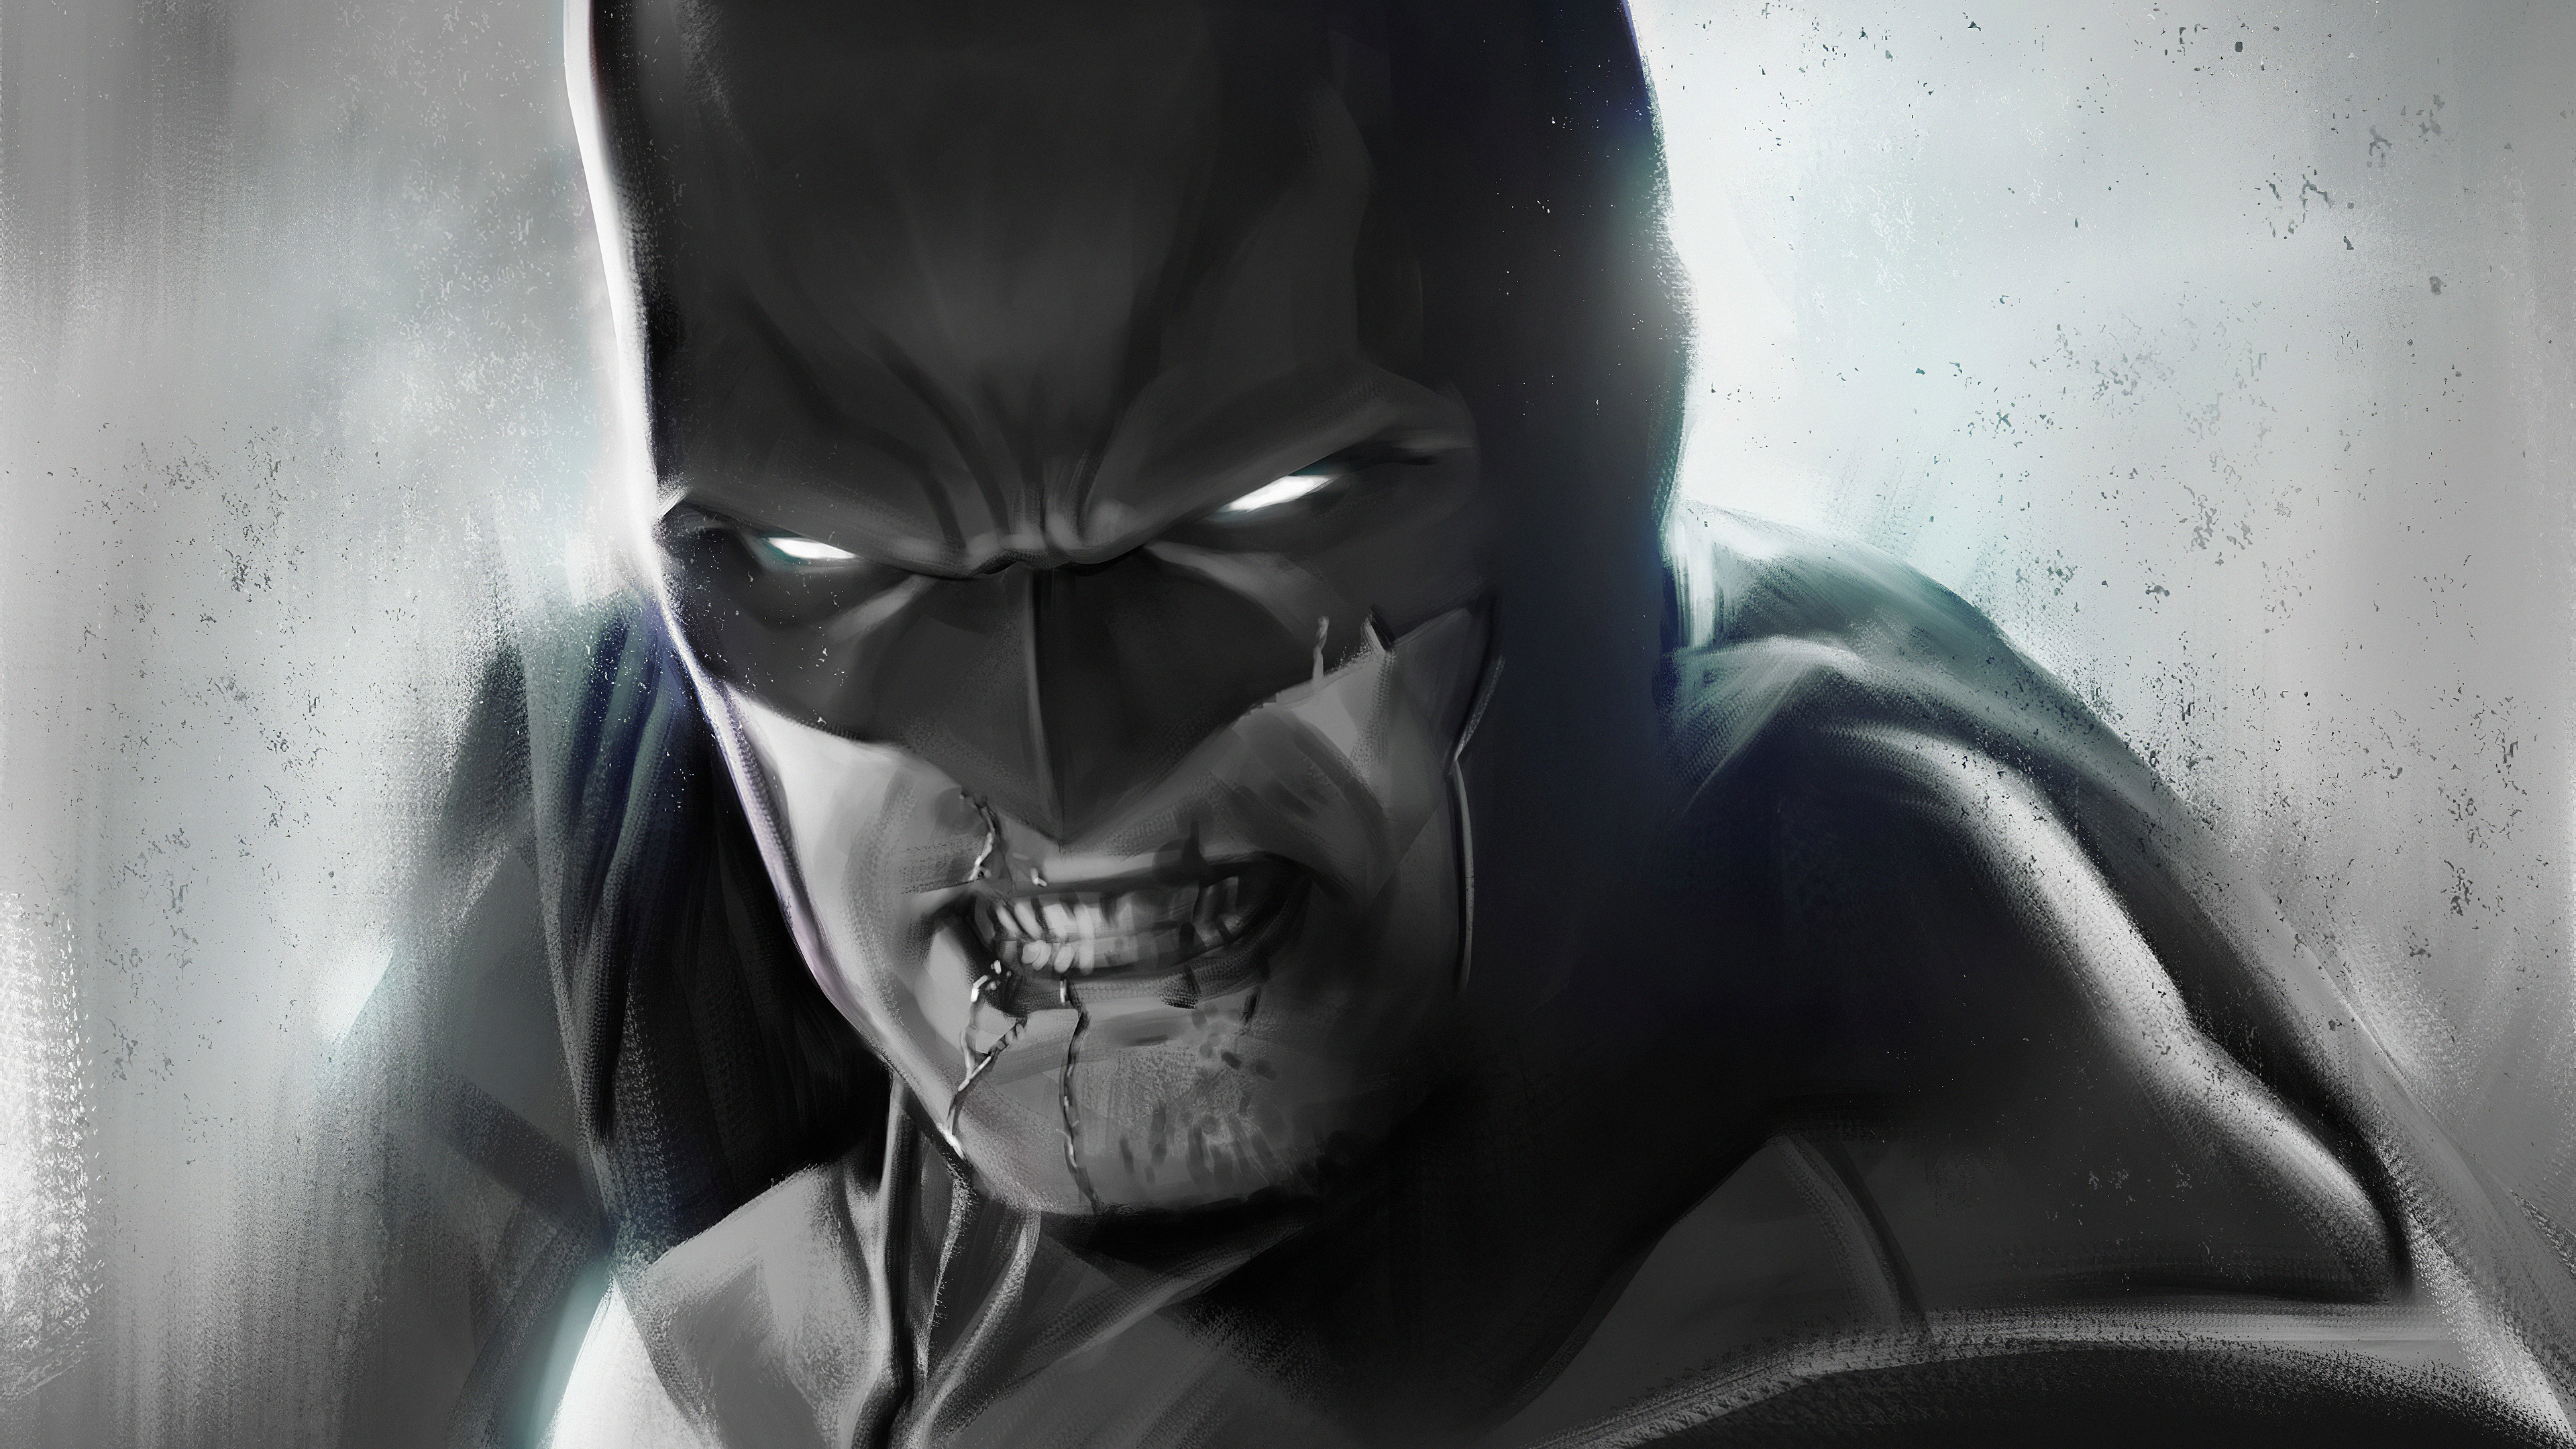 Wallpaper 4k Angry Batman Art Angry Batman Wallpaper Hd 4k Batman Angry Wallpaper Hd 4k